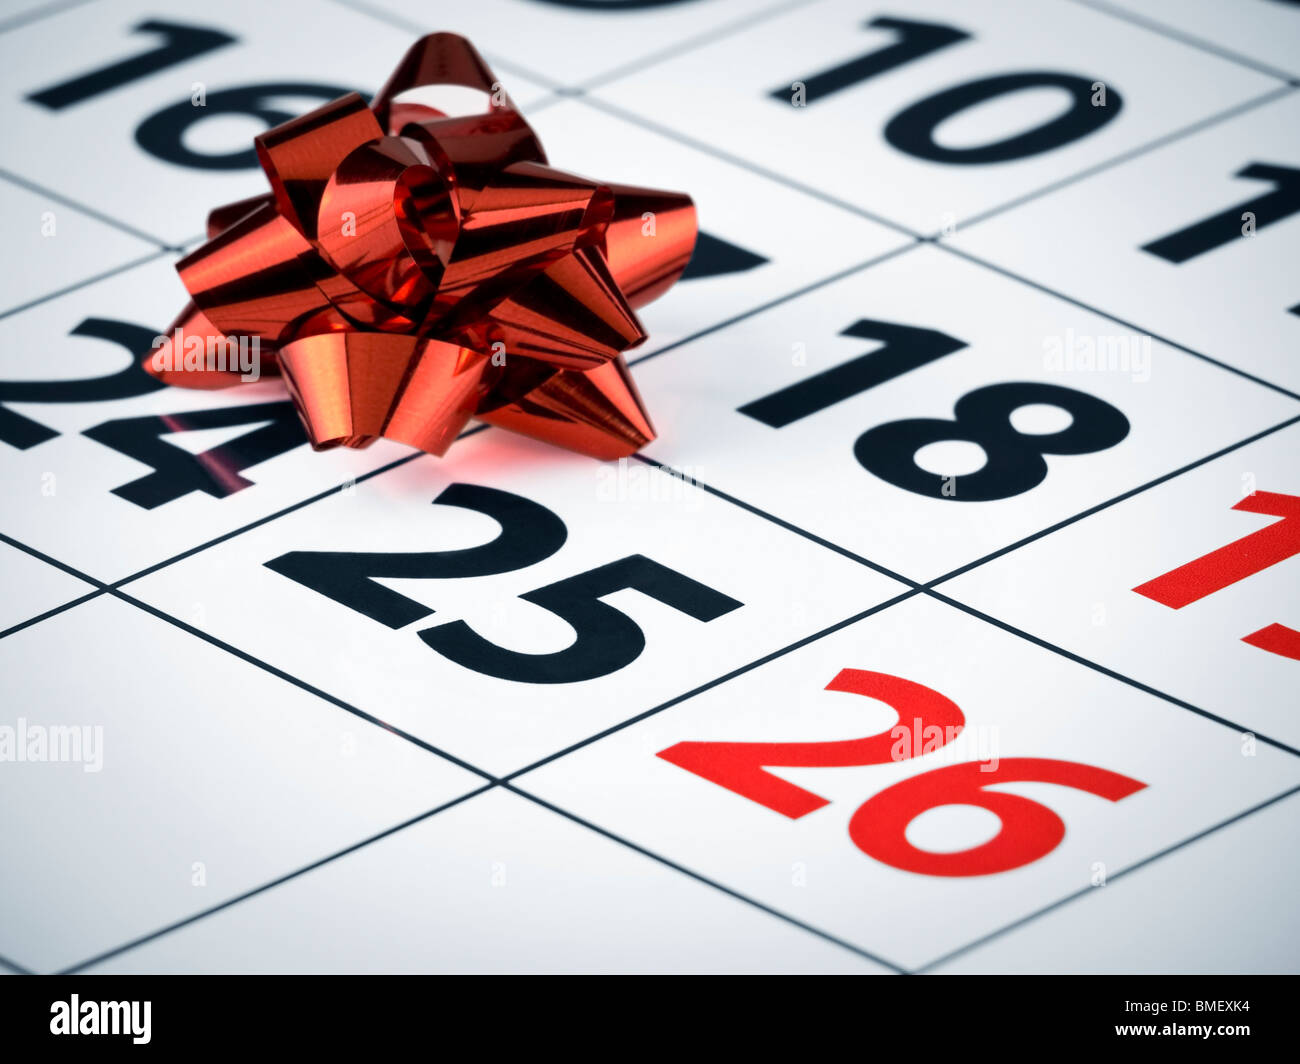 Close up of a red bow on a calendar page. - Stock Image